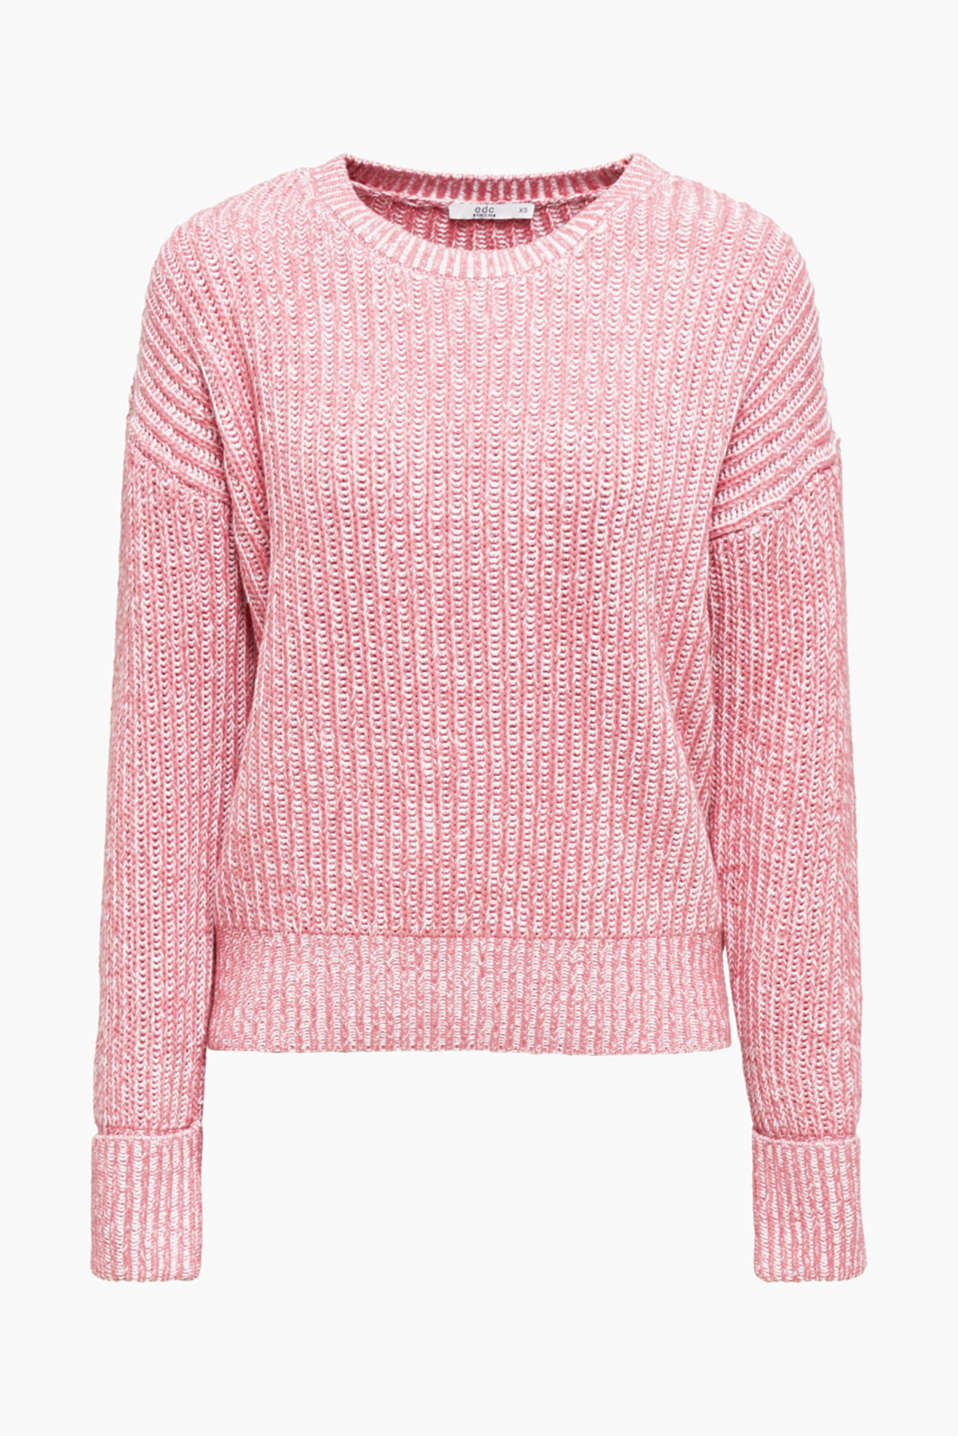 Melange chunky knit jumper, BLUSH 3, detail image number 6